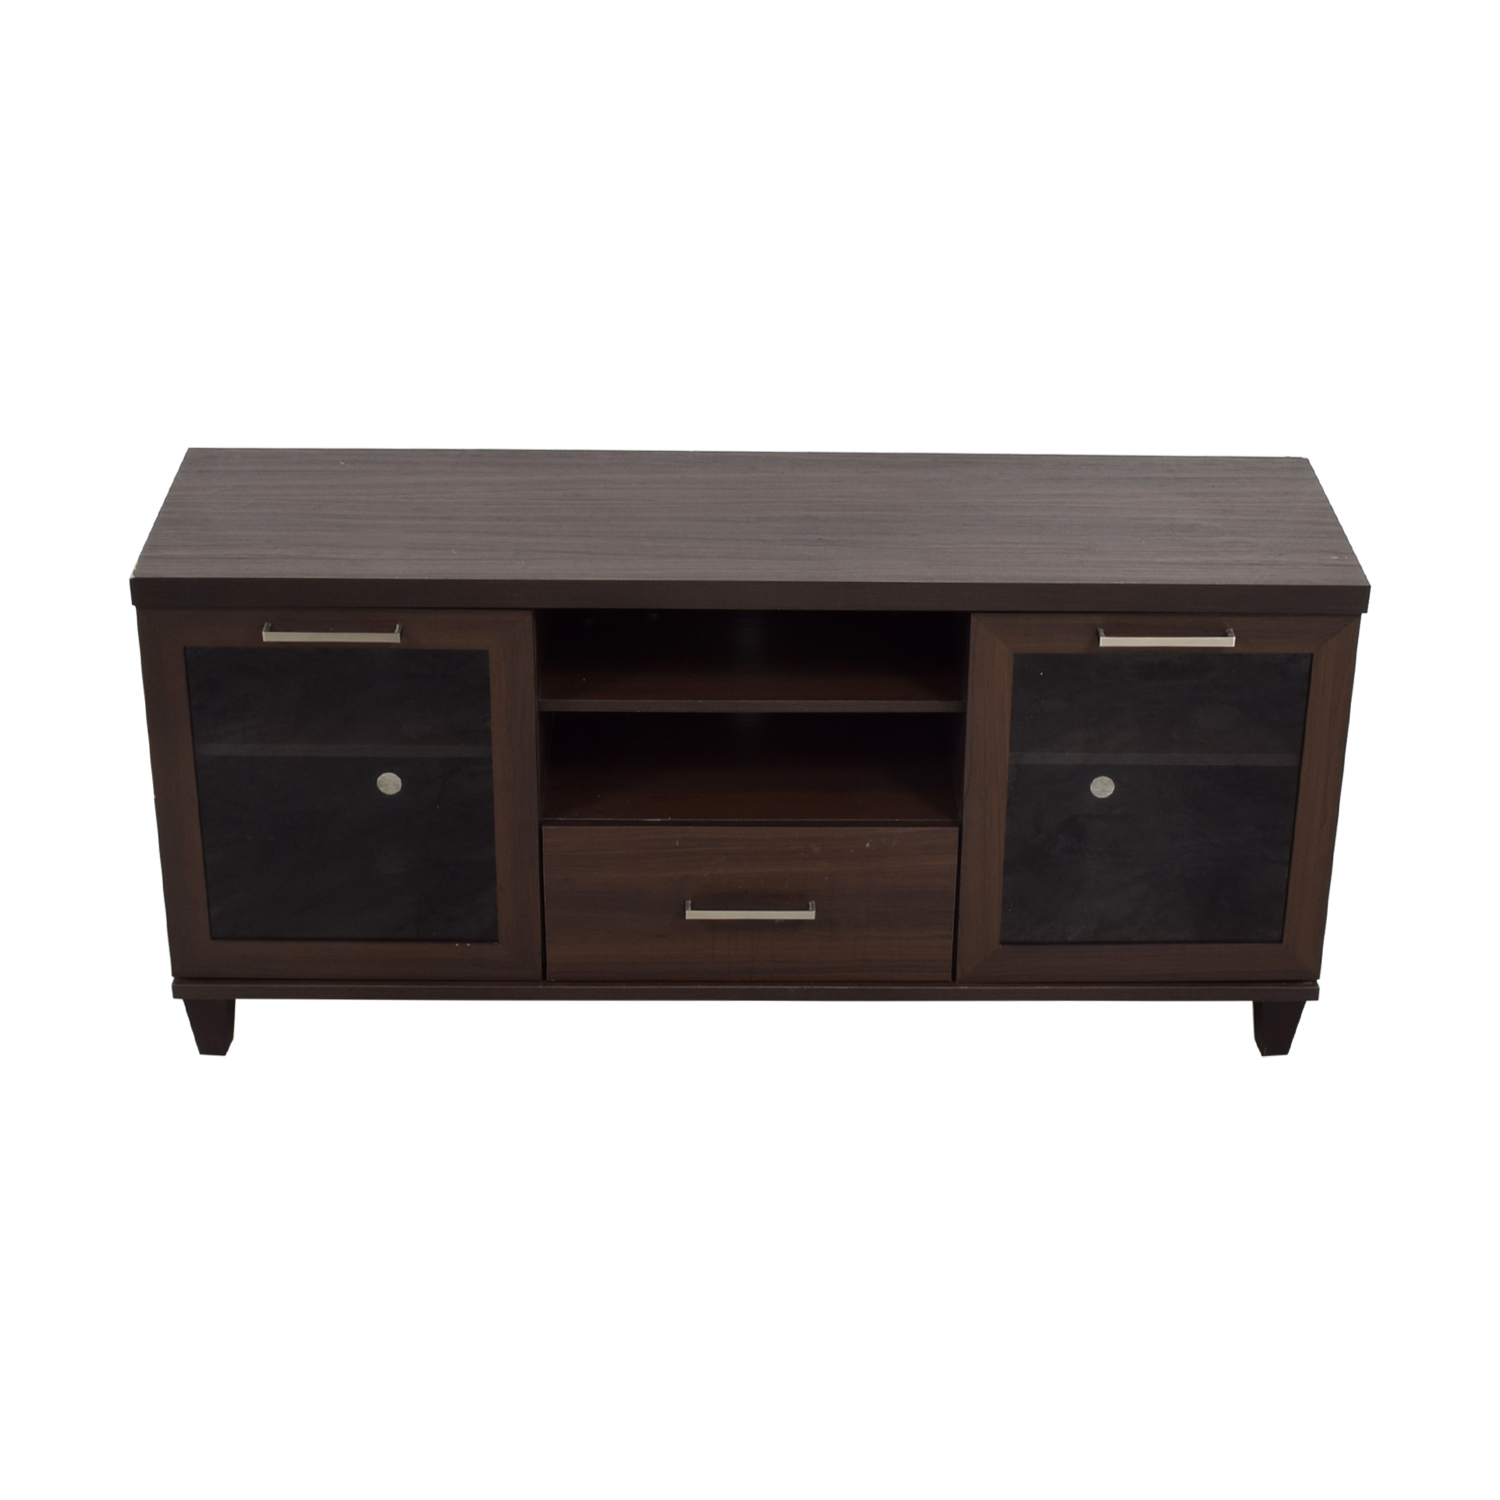 Single Drawer Wood TV Stand with Side Cabinets brown